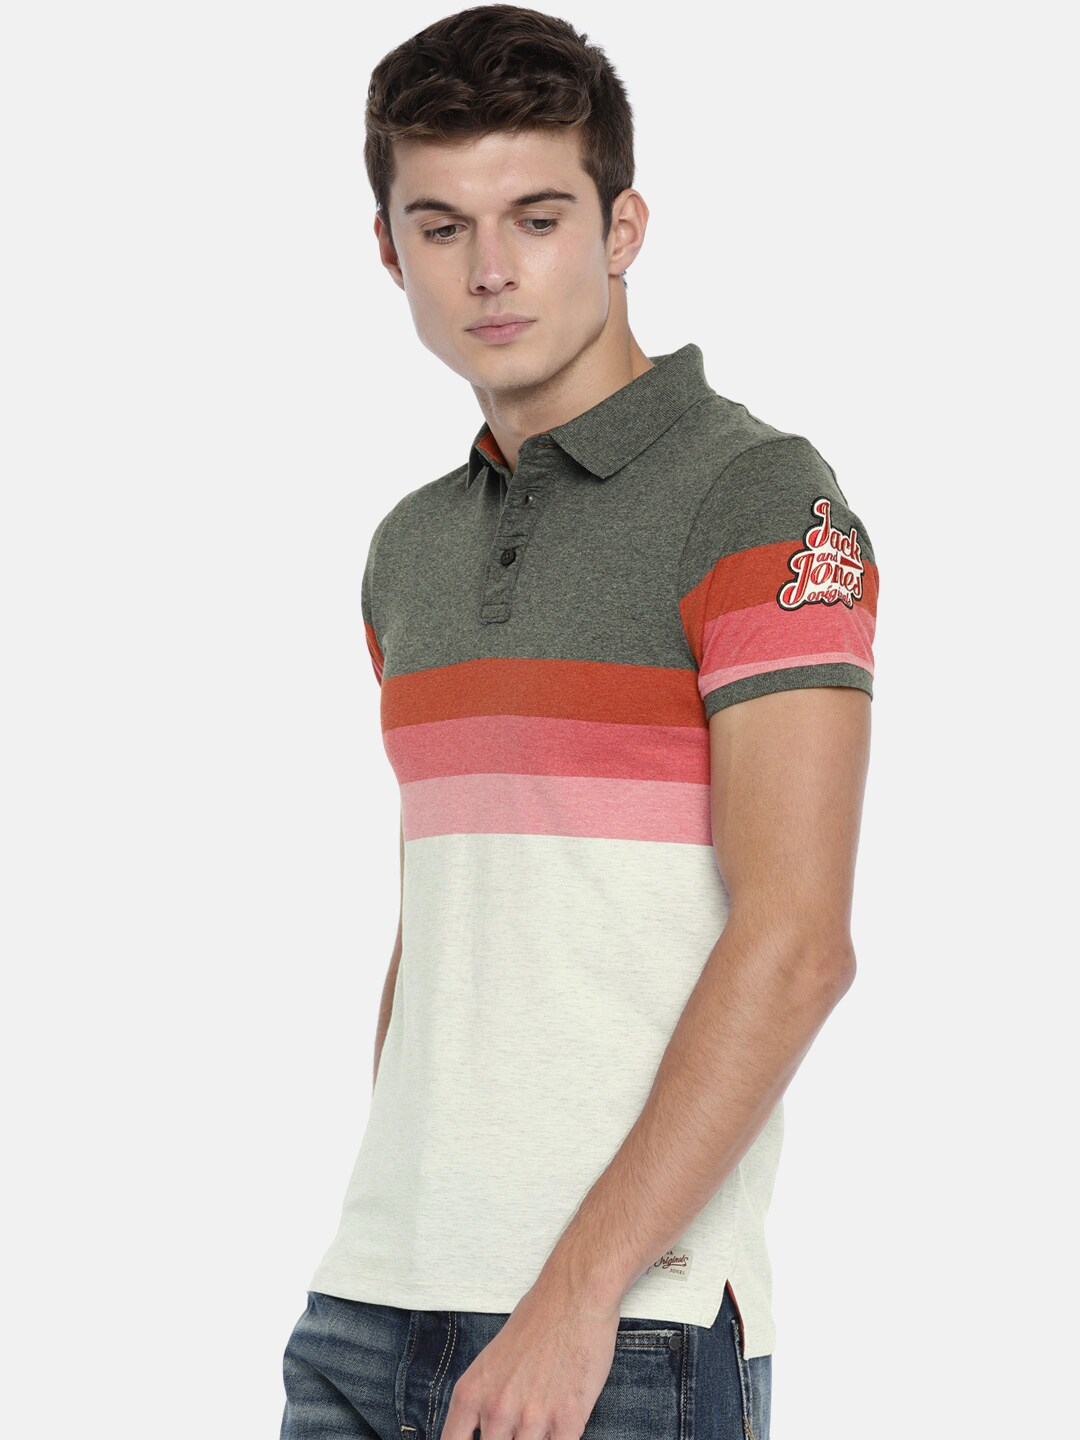 8be234c28 Jack Jones - Exclusive Jack Jones Online Store in India at Myntra